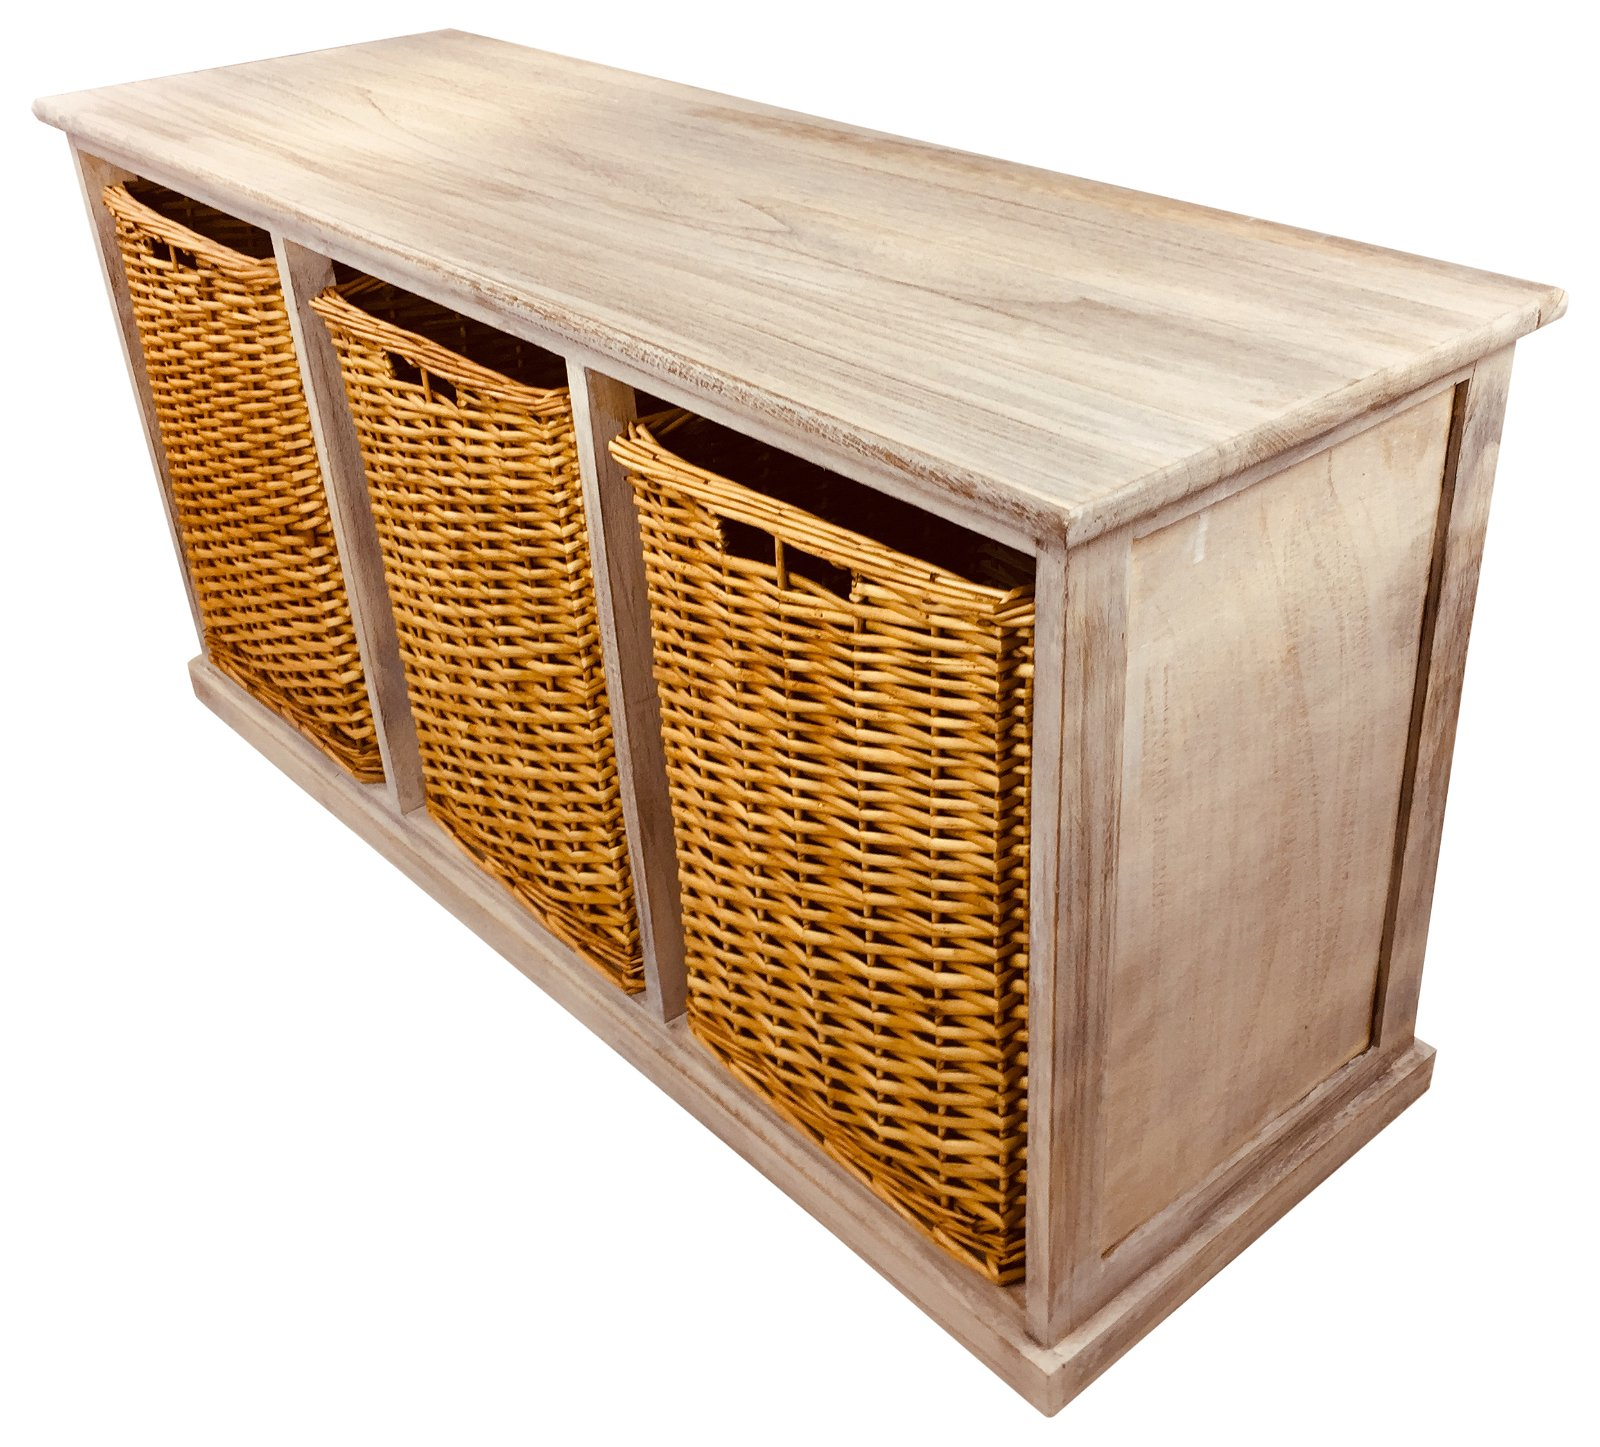 Wooden Storage Bench With 3 Large Baskets 101cm